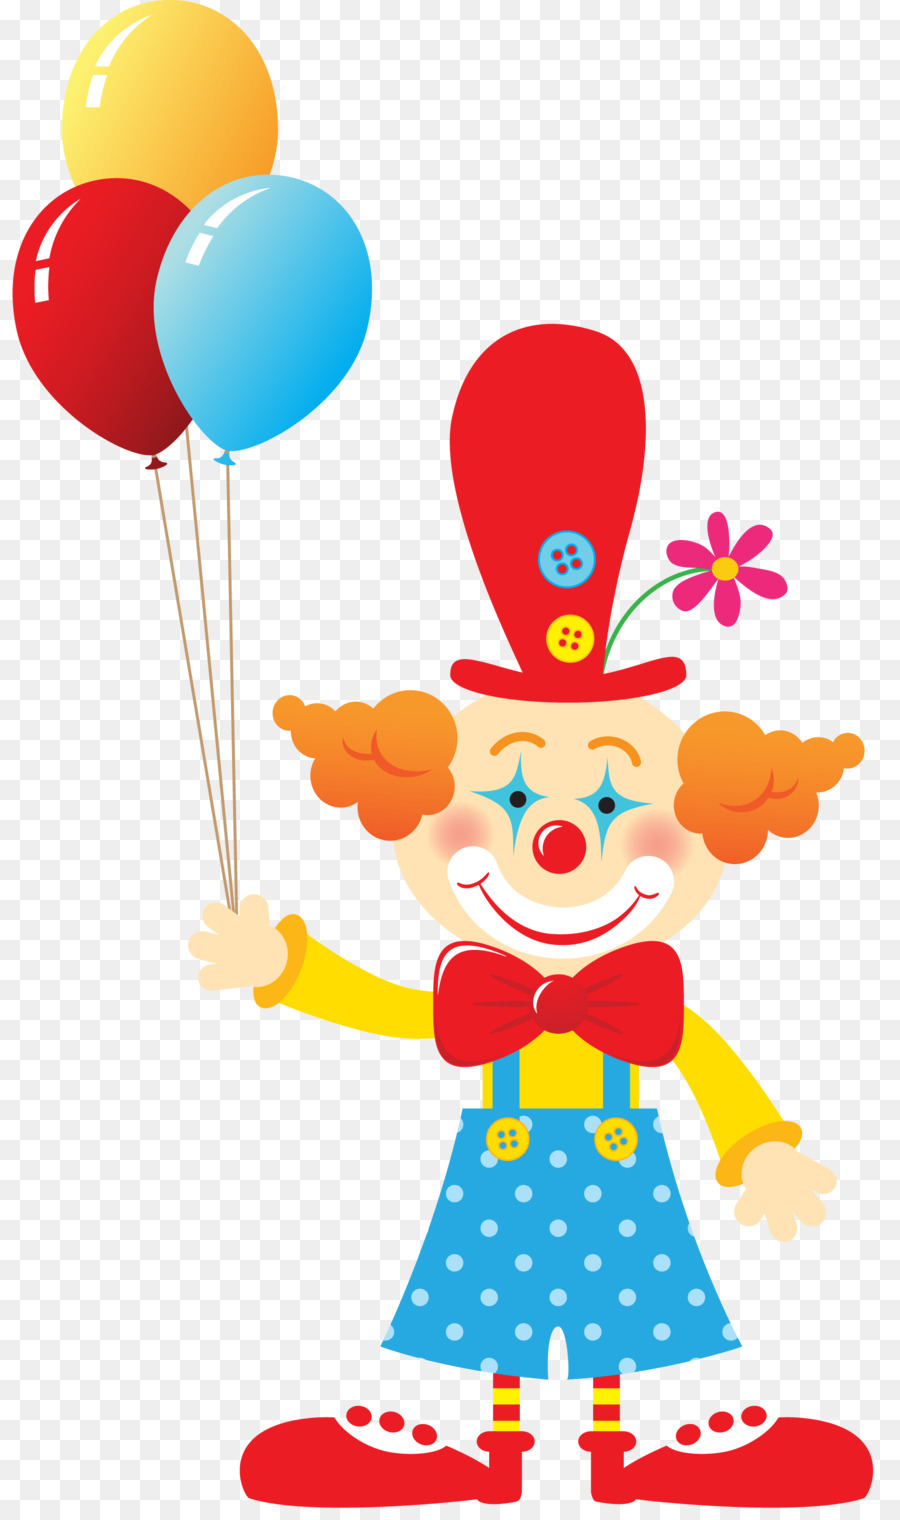 Clown clipart. Car circus clip art